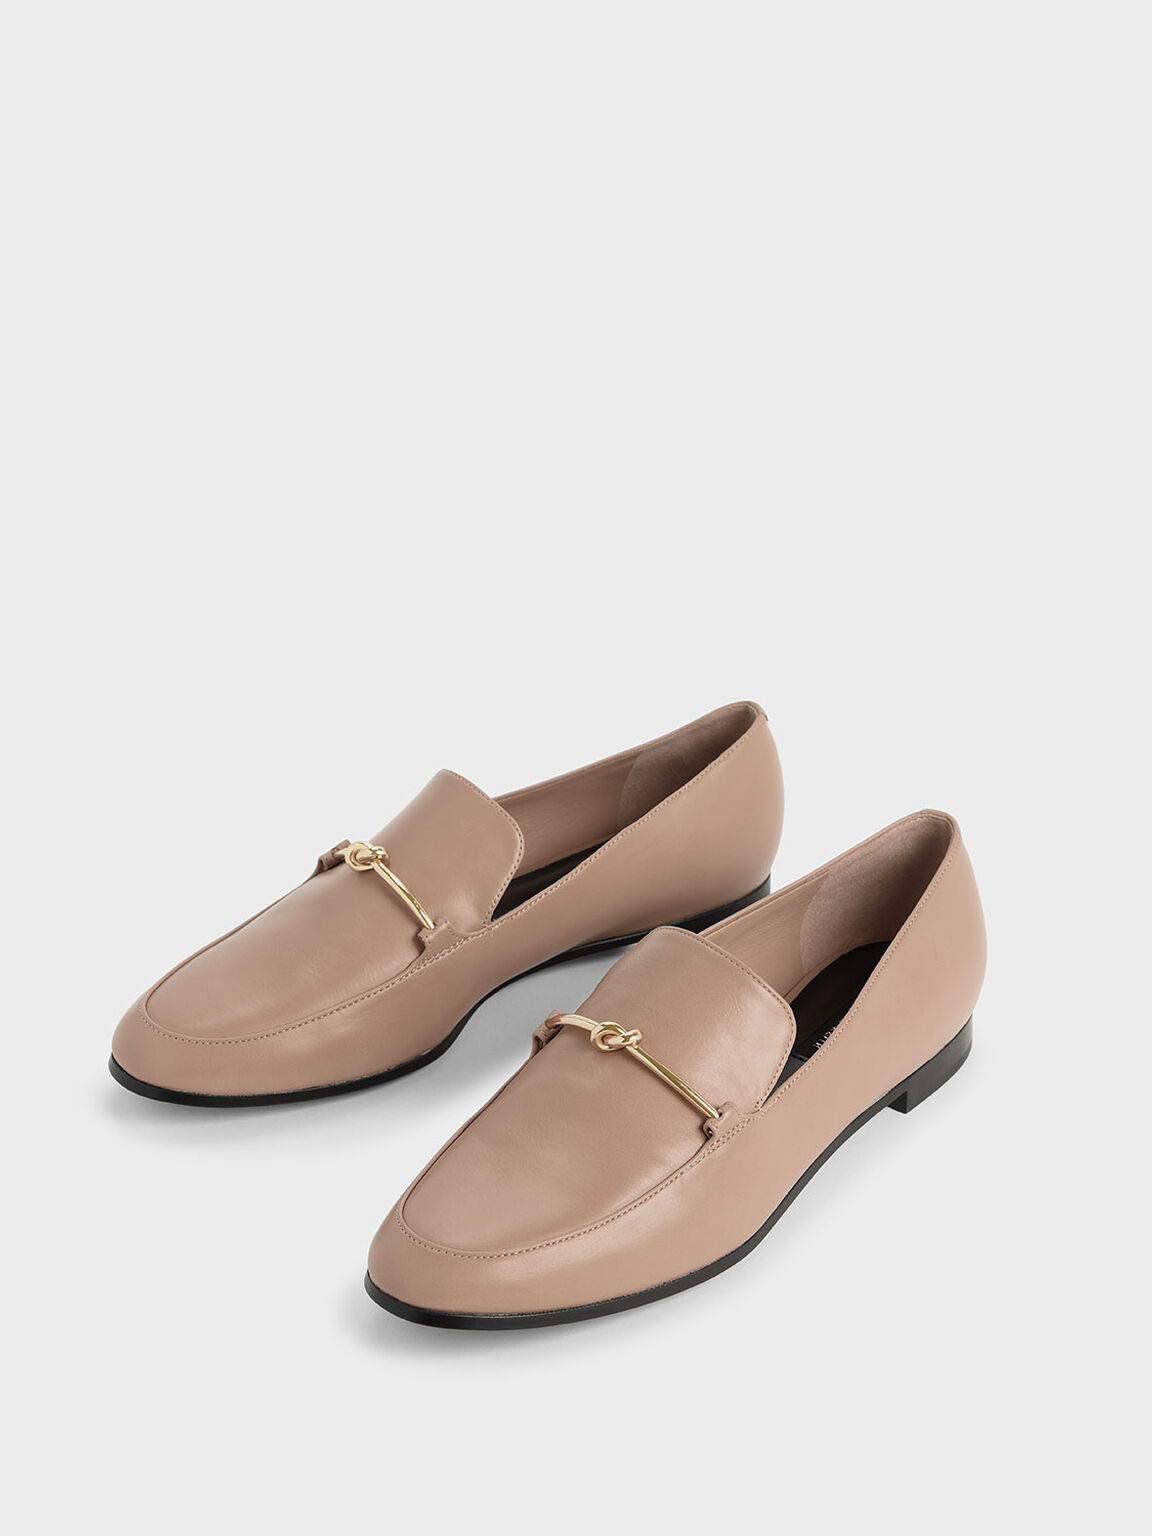 Metallic Knot Accent Loafers, Nude, hi-res